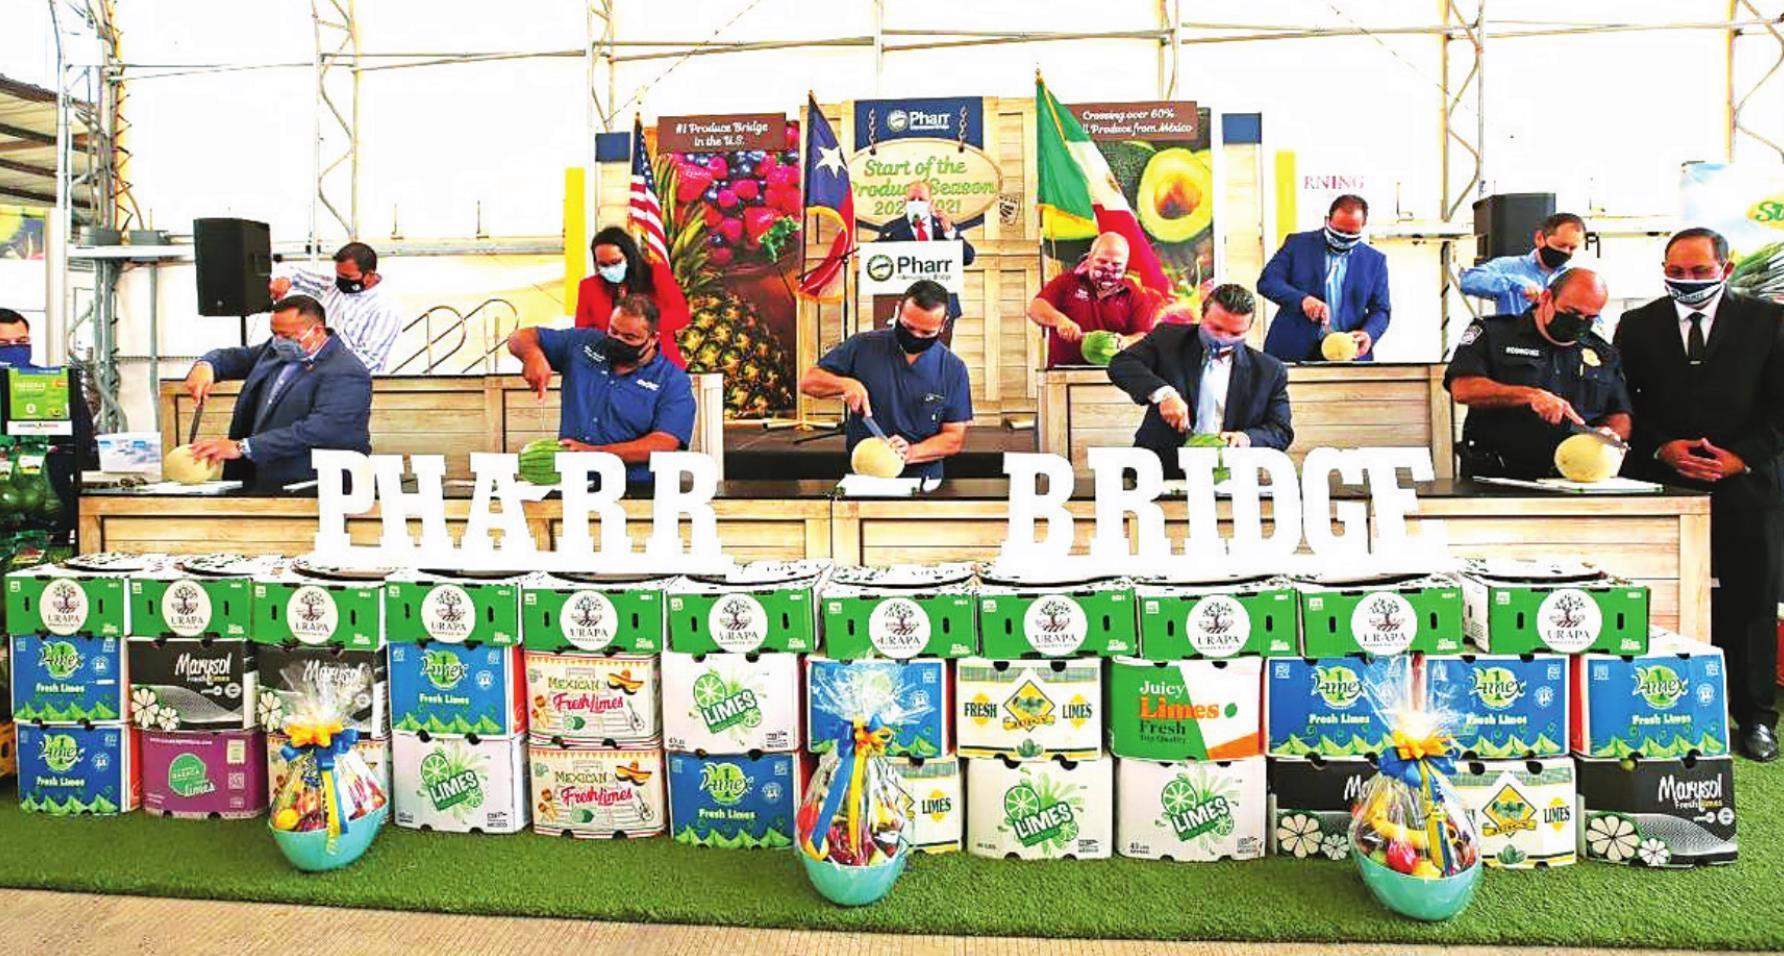 Traditional Cutting of the Fruit - Mayor Ambrosio Hernandez, M.D., and special guests including Texas State Representative Sergio Muñoz, Jr., Chairman of the Pharr International Bridge Board Edgar Delgadillo, Vice-Chairman of the Pharr International Brid